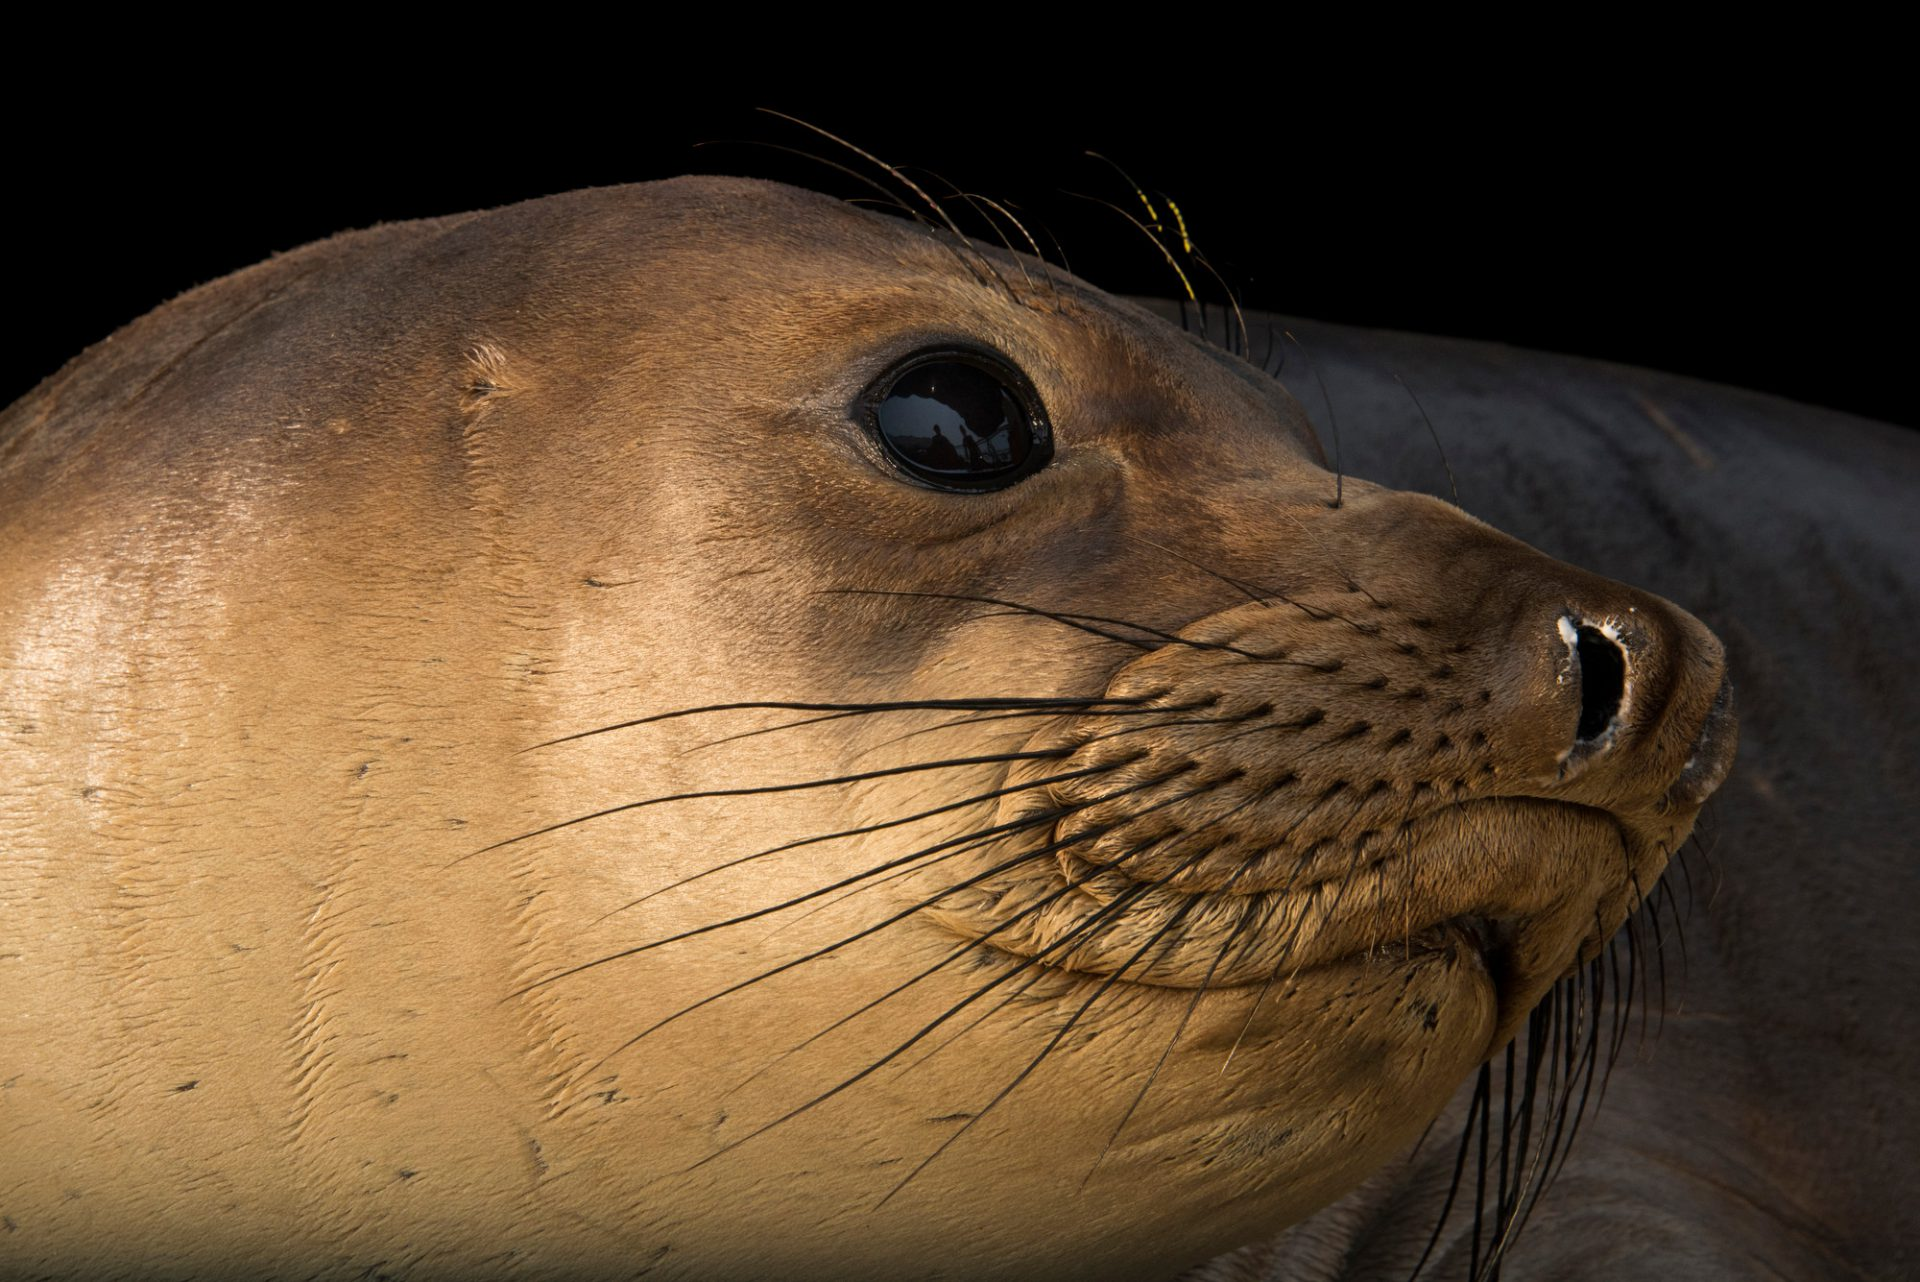 Photo: A male, juvenile, northern elephant seal (Mirounga angustirostris) at the Marine Mammal Care Center.